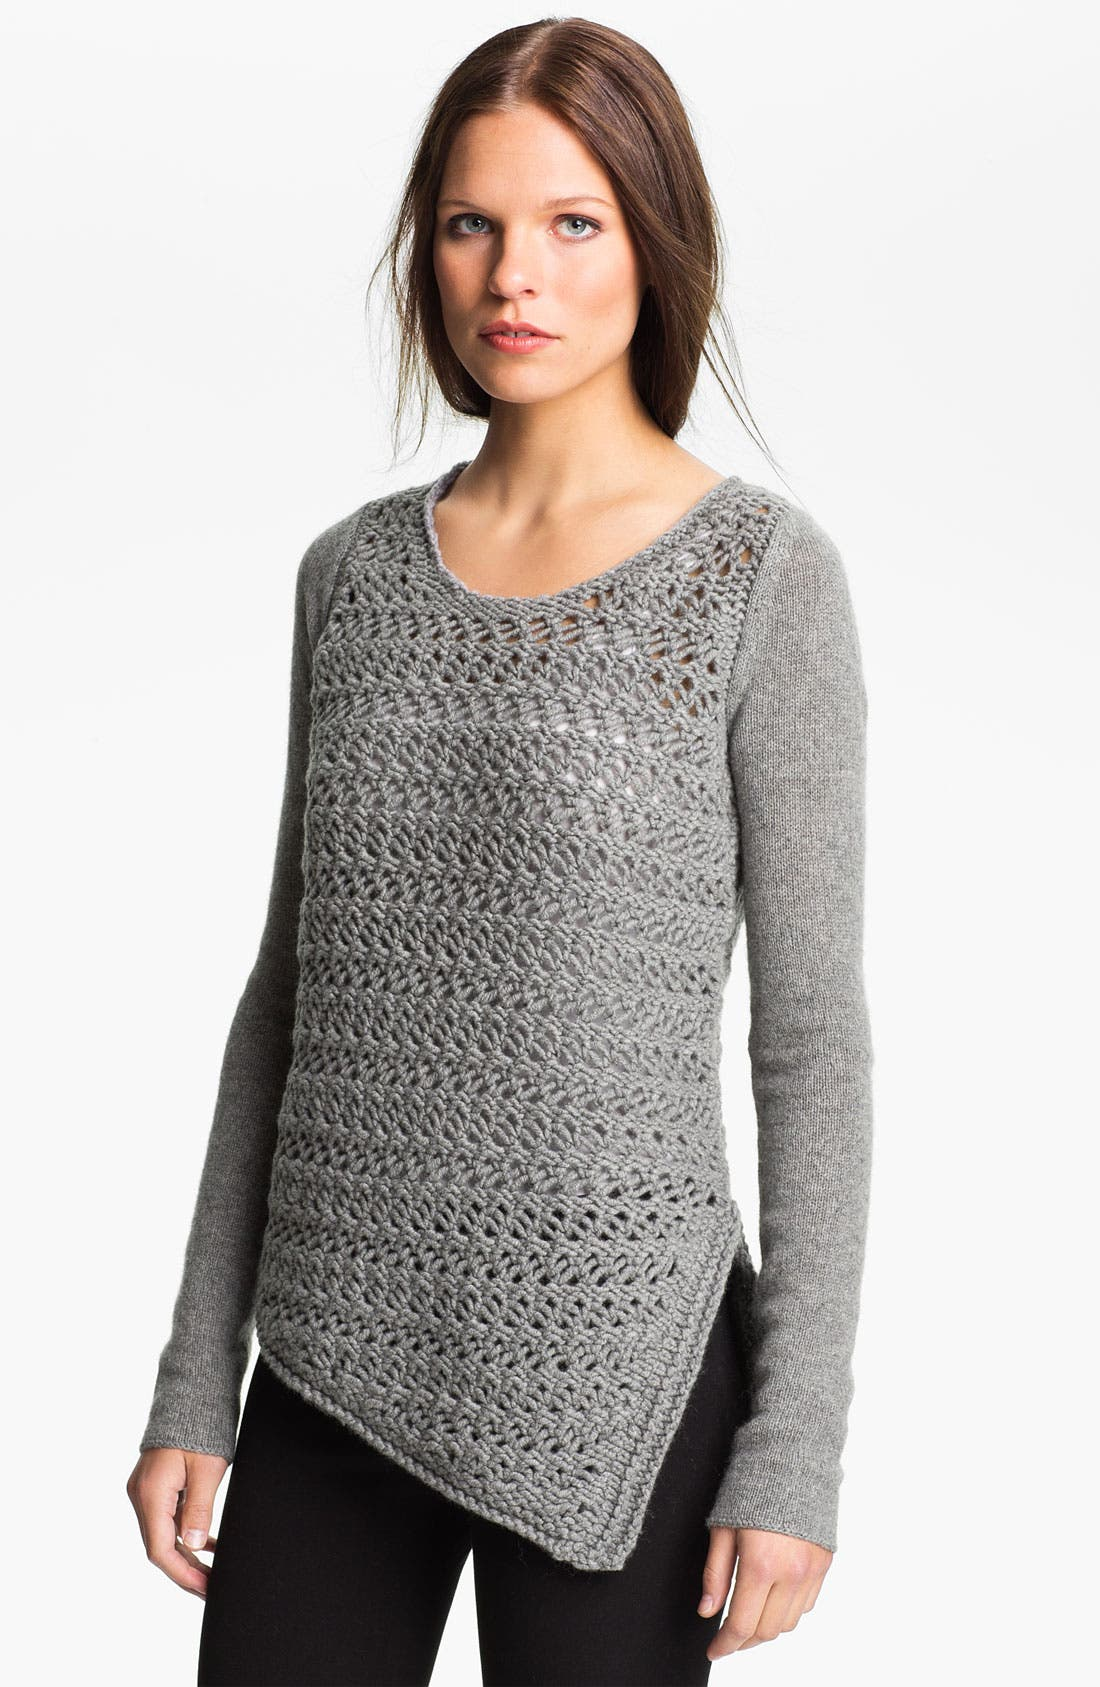 Main Image - Helmut Lang Wool & Cashmere Pullover Sweater